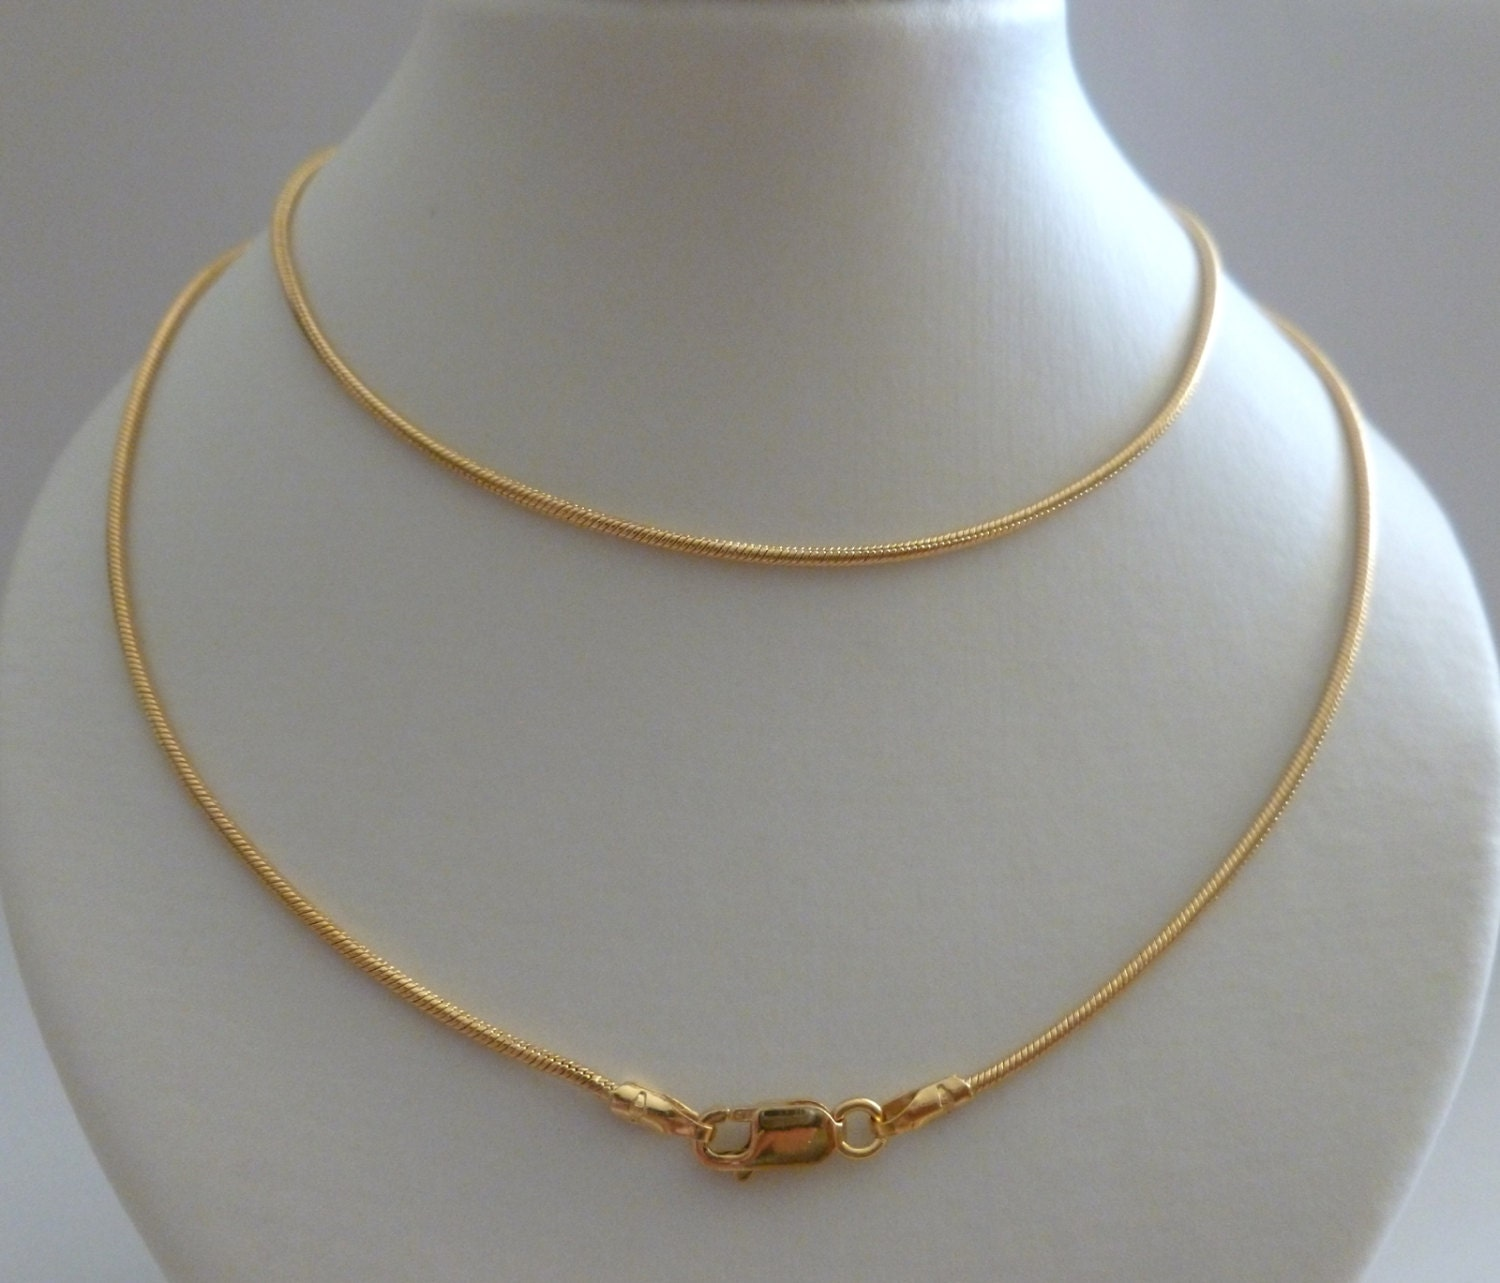 gold webstore category white diamond material chains jewellery samuel l necklaces swirl h product number pendant